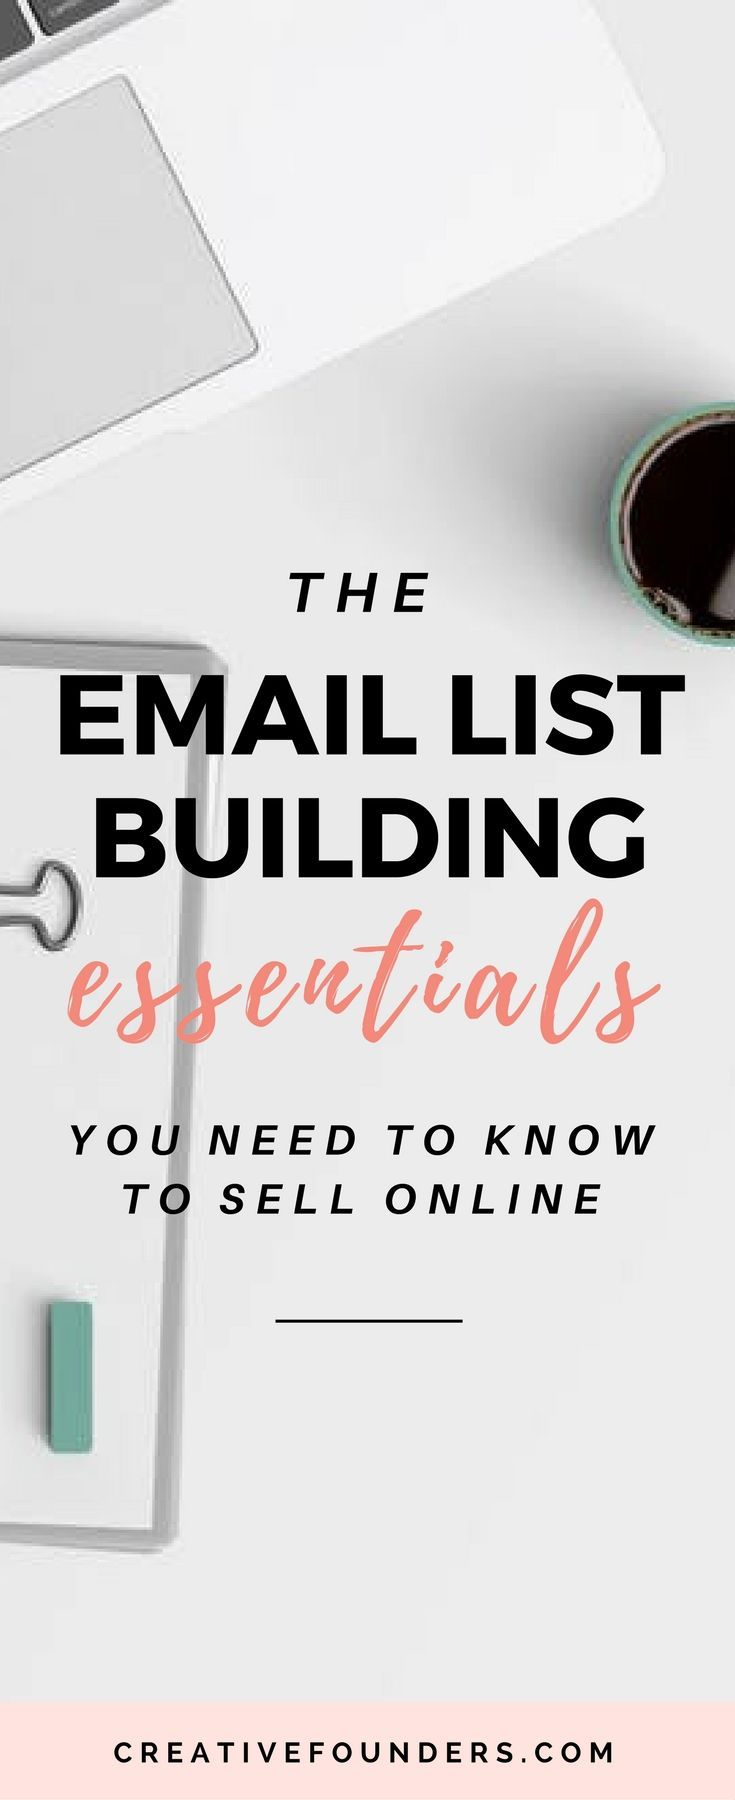 The Email List Building Essentials. What you need to know to sell online. Sell art online // art business // mailchimp // email marketing // convertkit // email list building